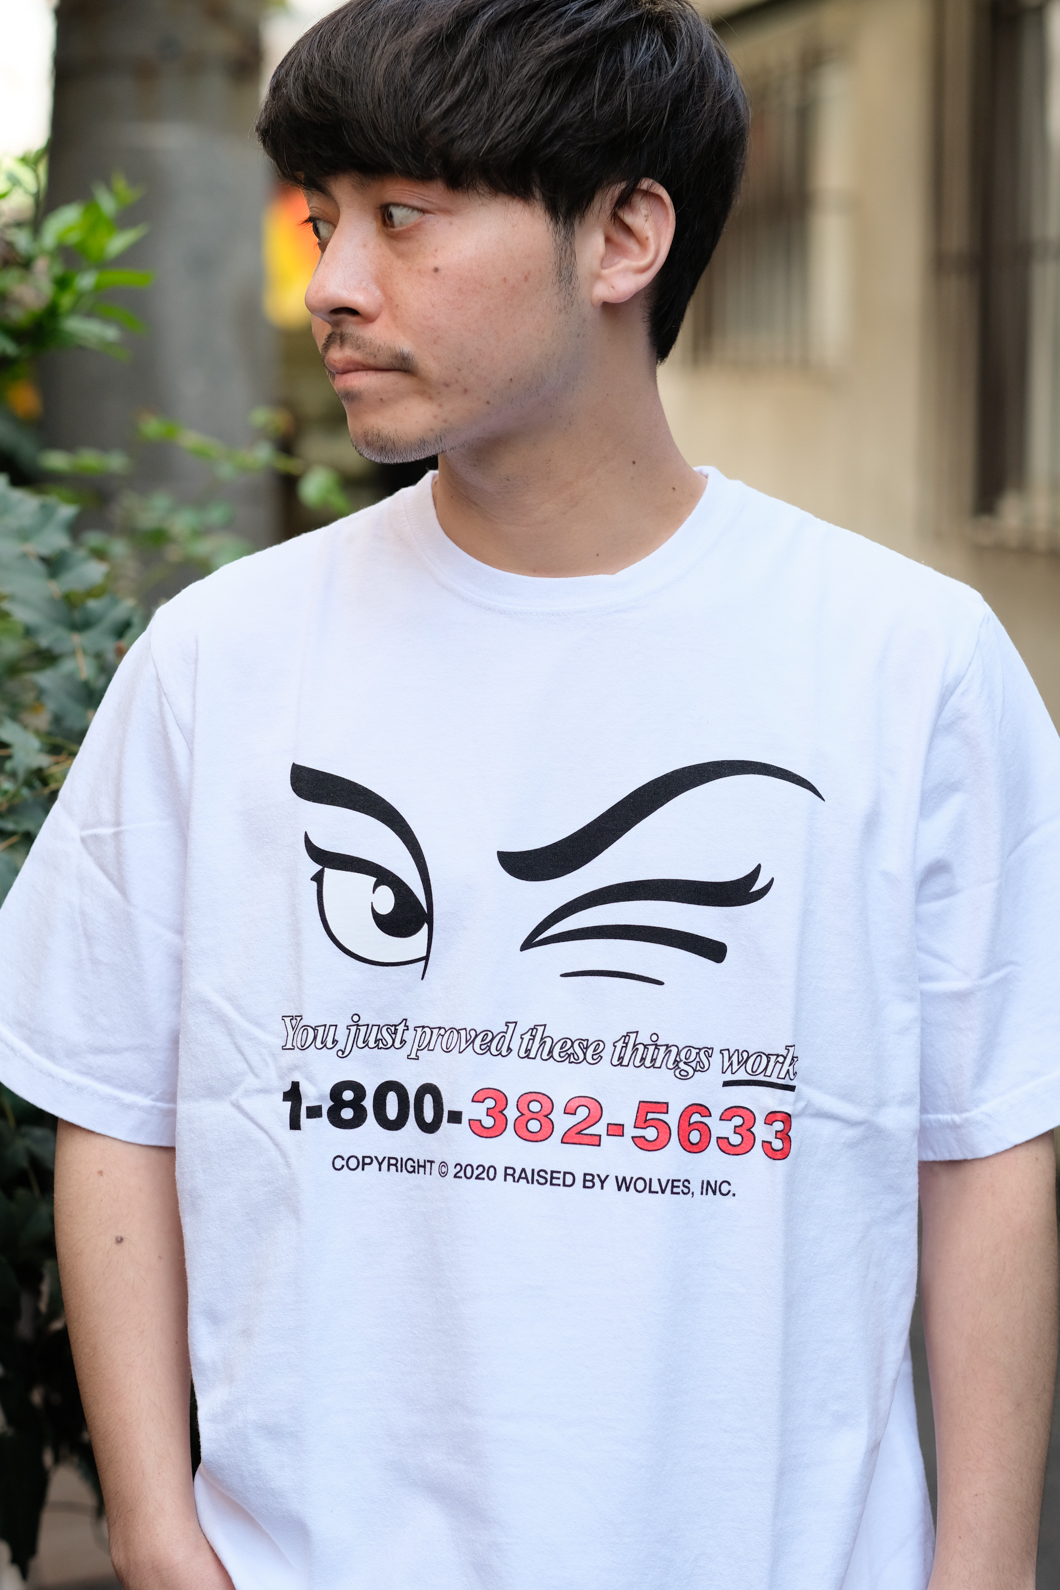 【RAISED BY WOLVES/レイズドバイウルブス】YOU JUST PROVED TEE Tシャツ / WHITE